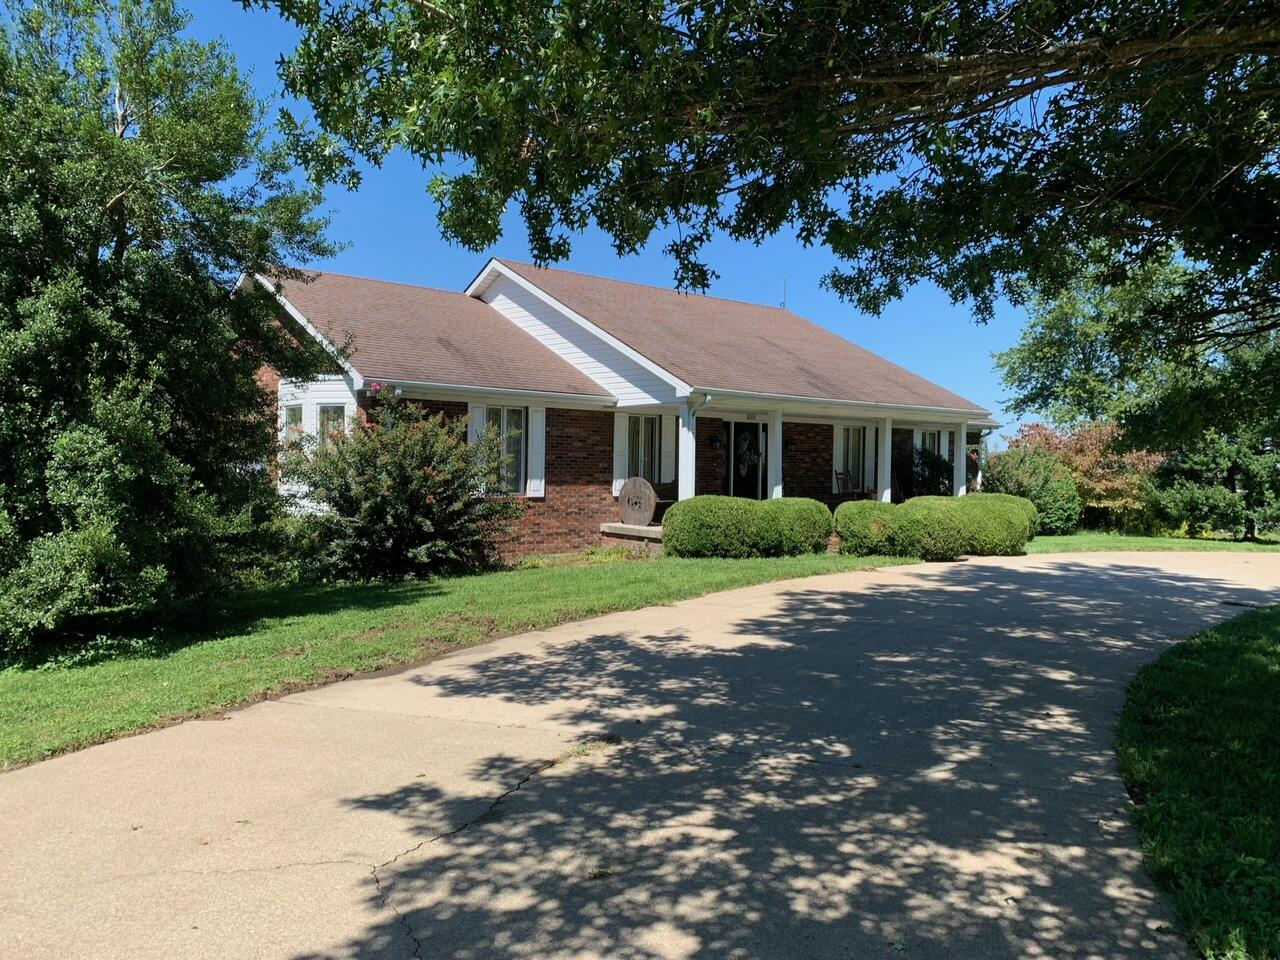 8255 KY Hwy 1247, Stanford, KY 40484